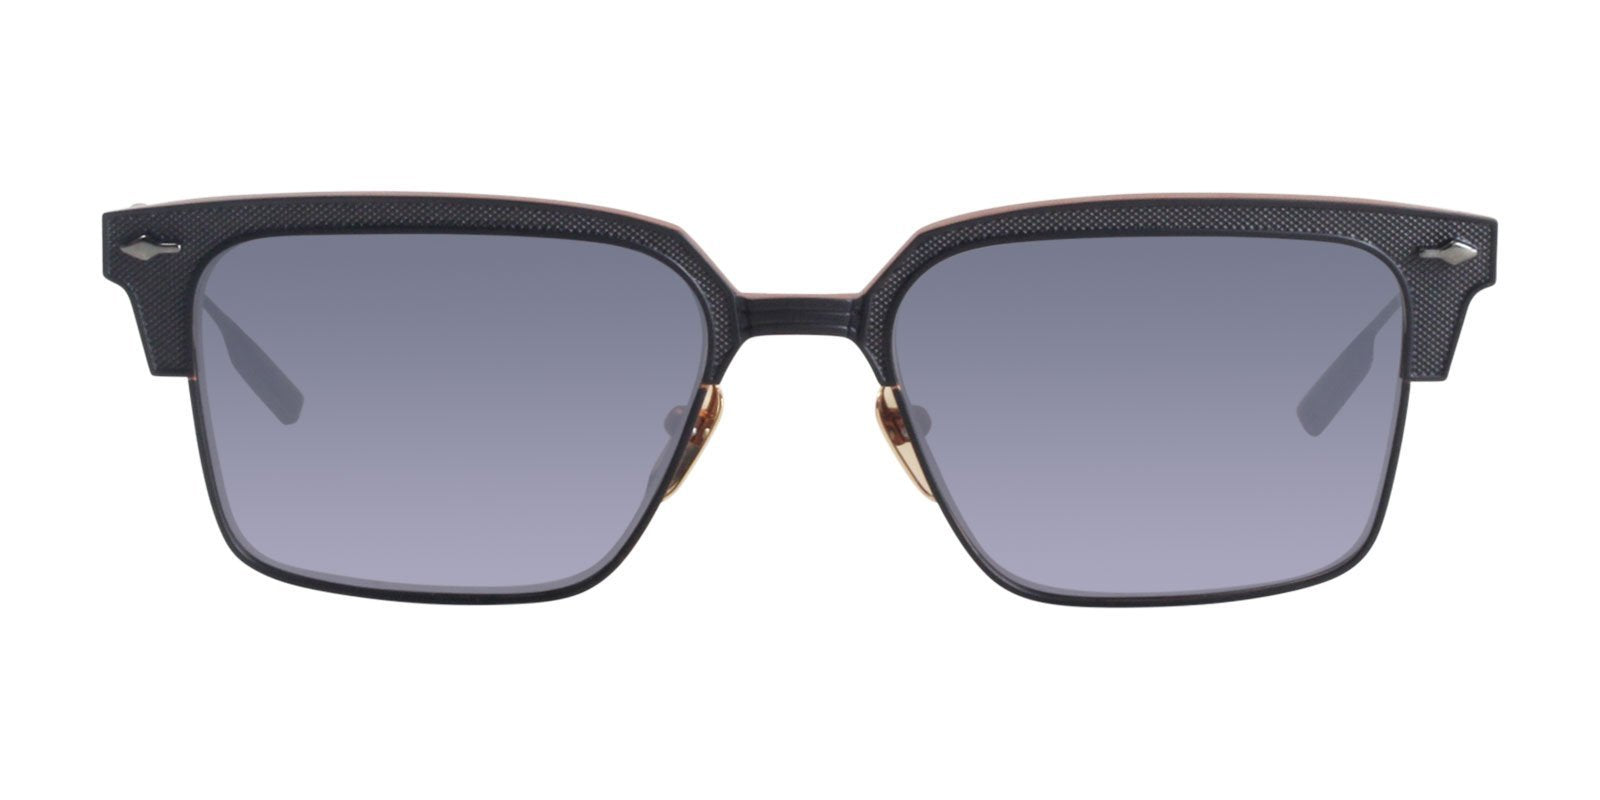 Jacques Marie Mage - Parker Black/Black Rectangular Unisex Sunglasses - 53mm-Sunglasses-Designer Eyes